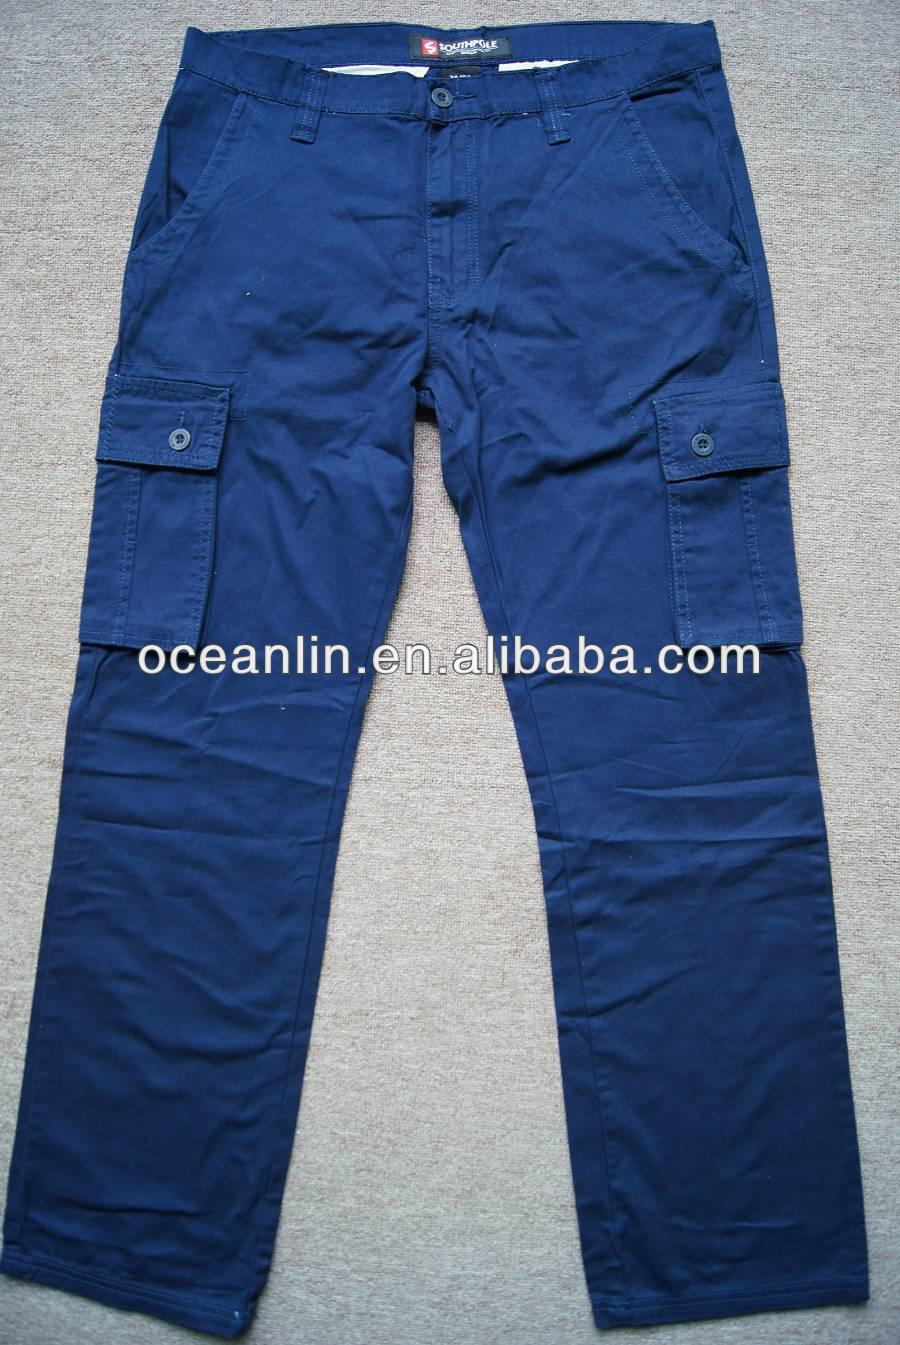 hot sale wholesale men pocket cargo pants with many pockets